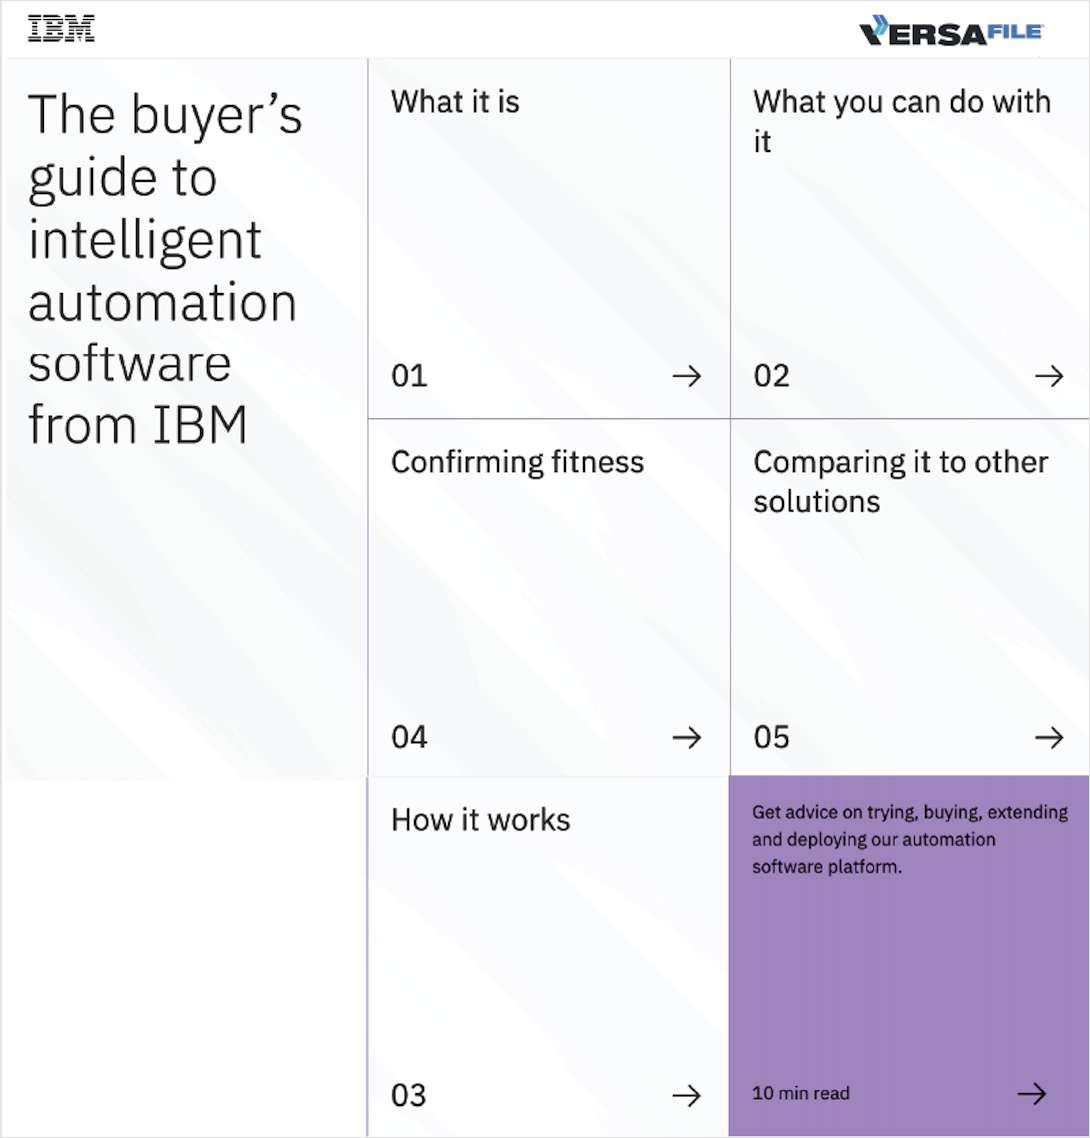 The buyer's guide to intelligent automation software from IBM